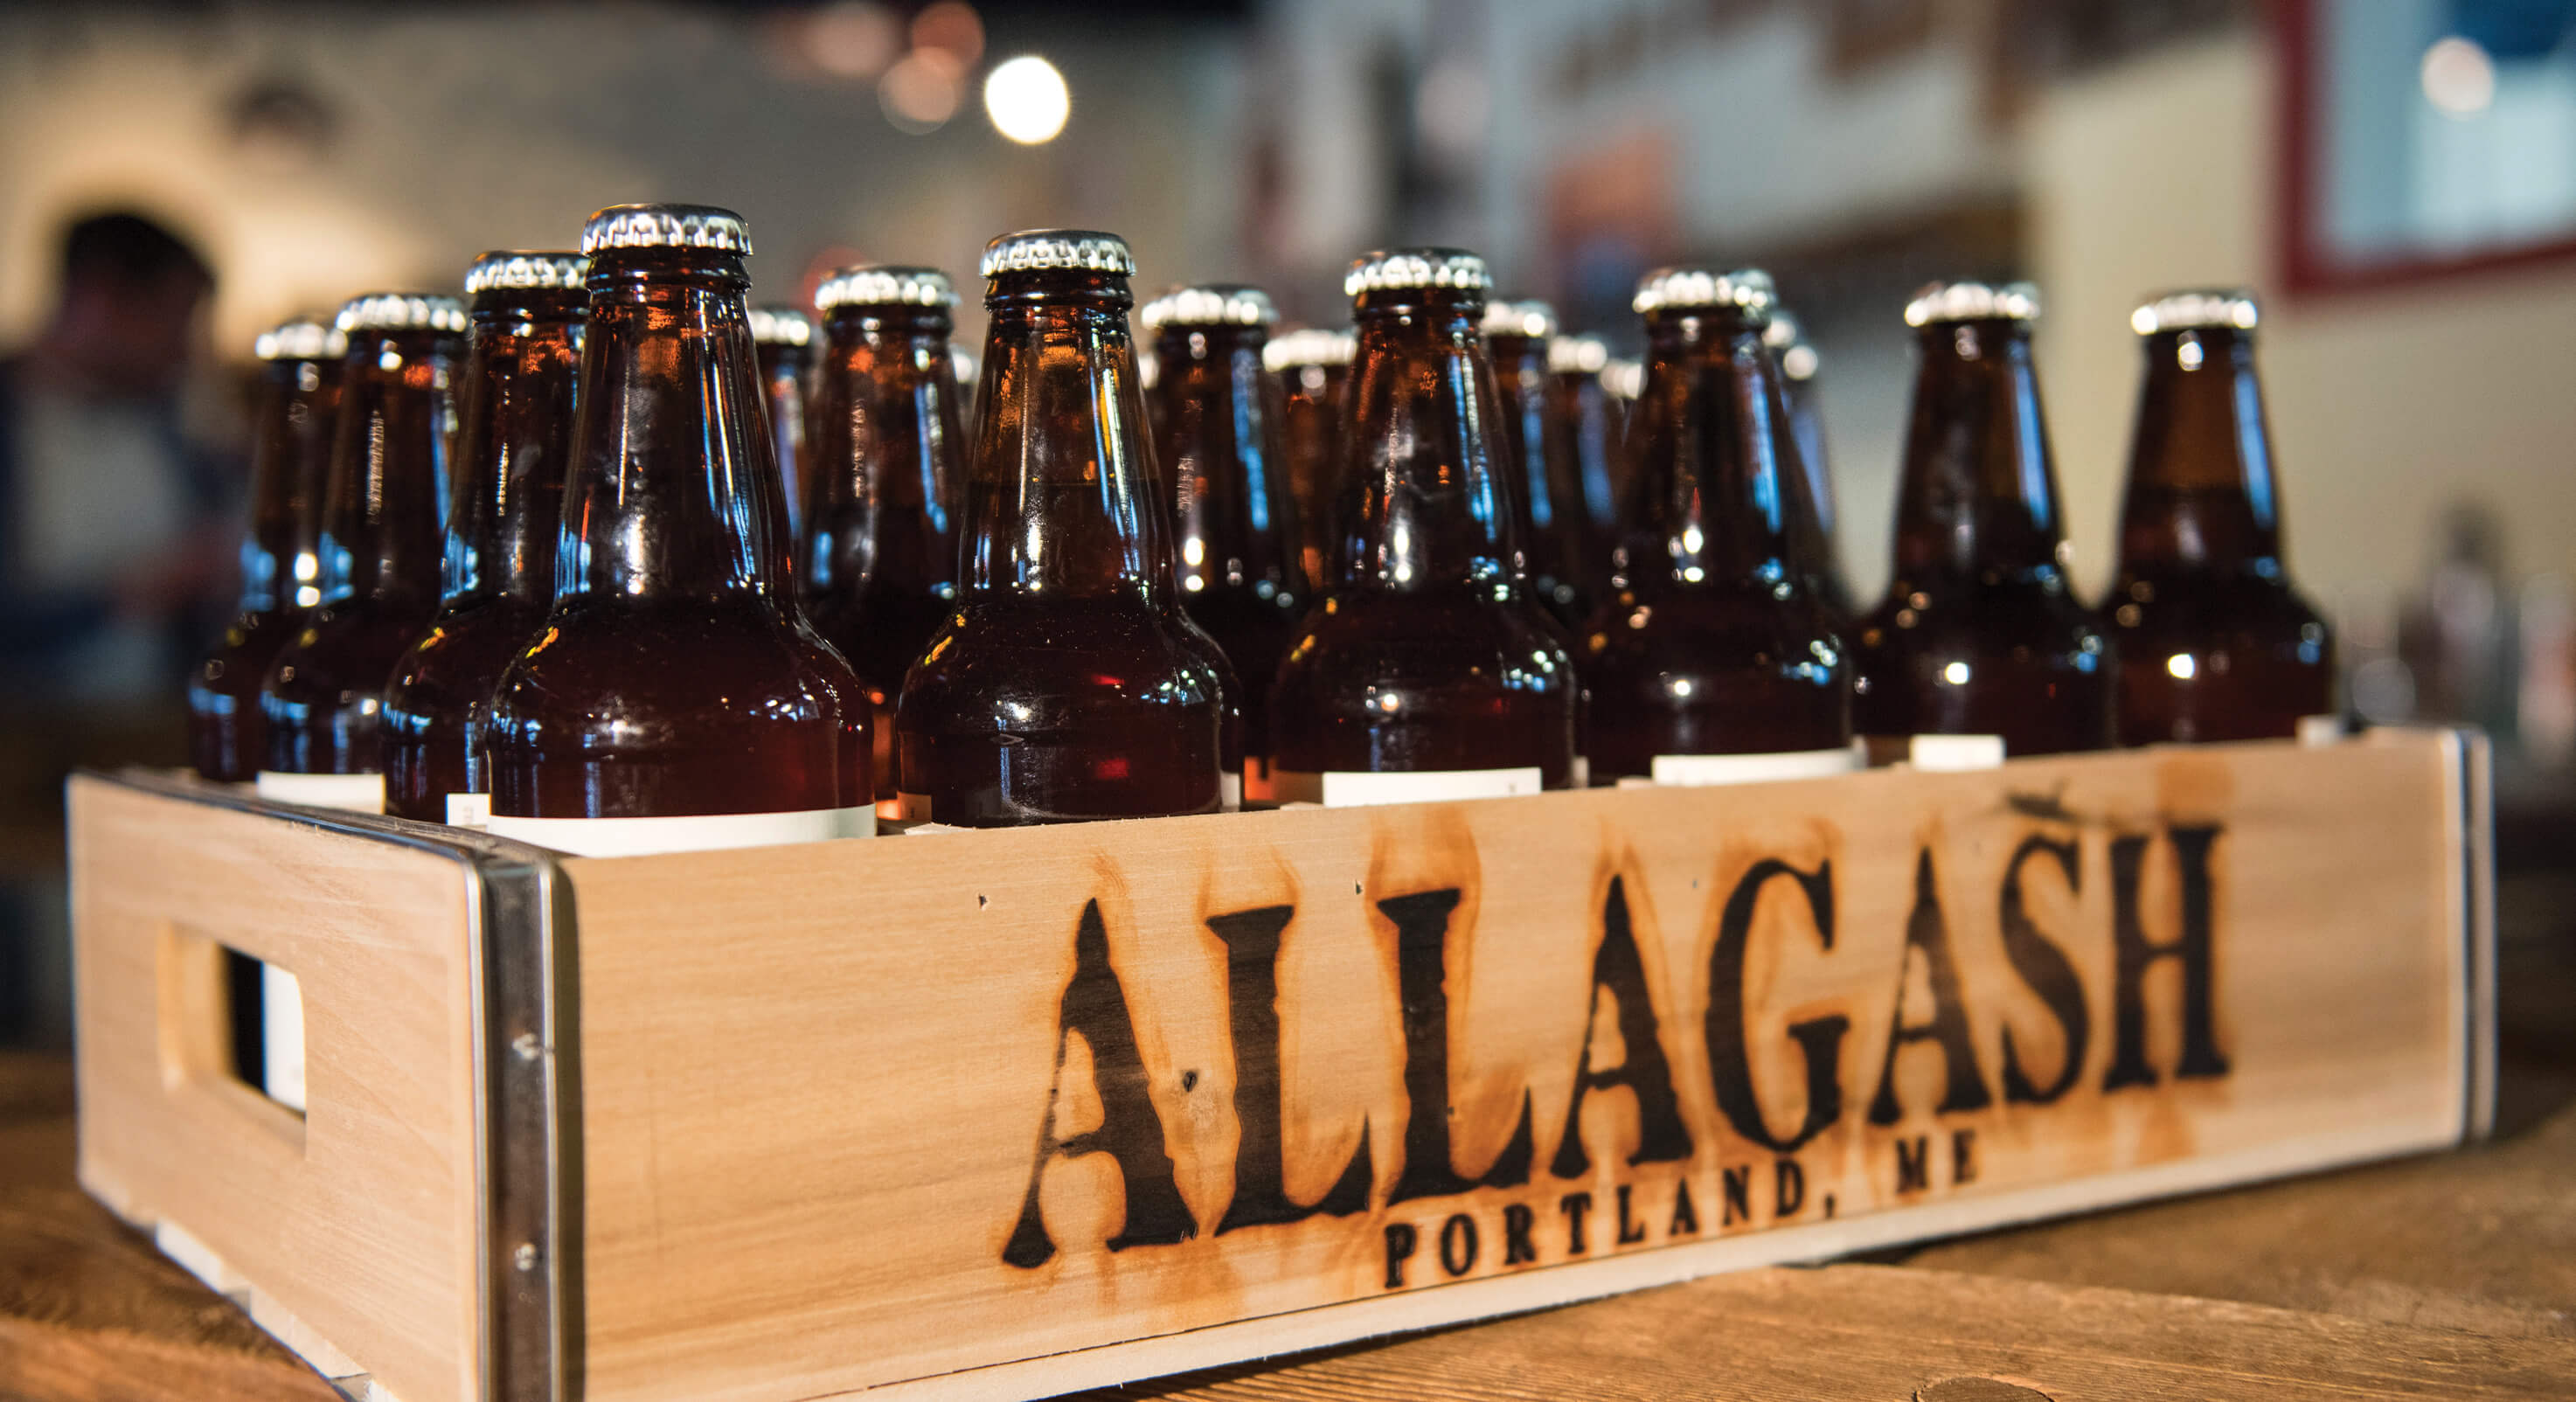 Allagash-beer-bottles-1